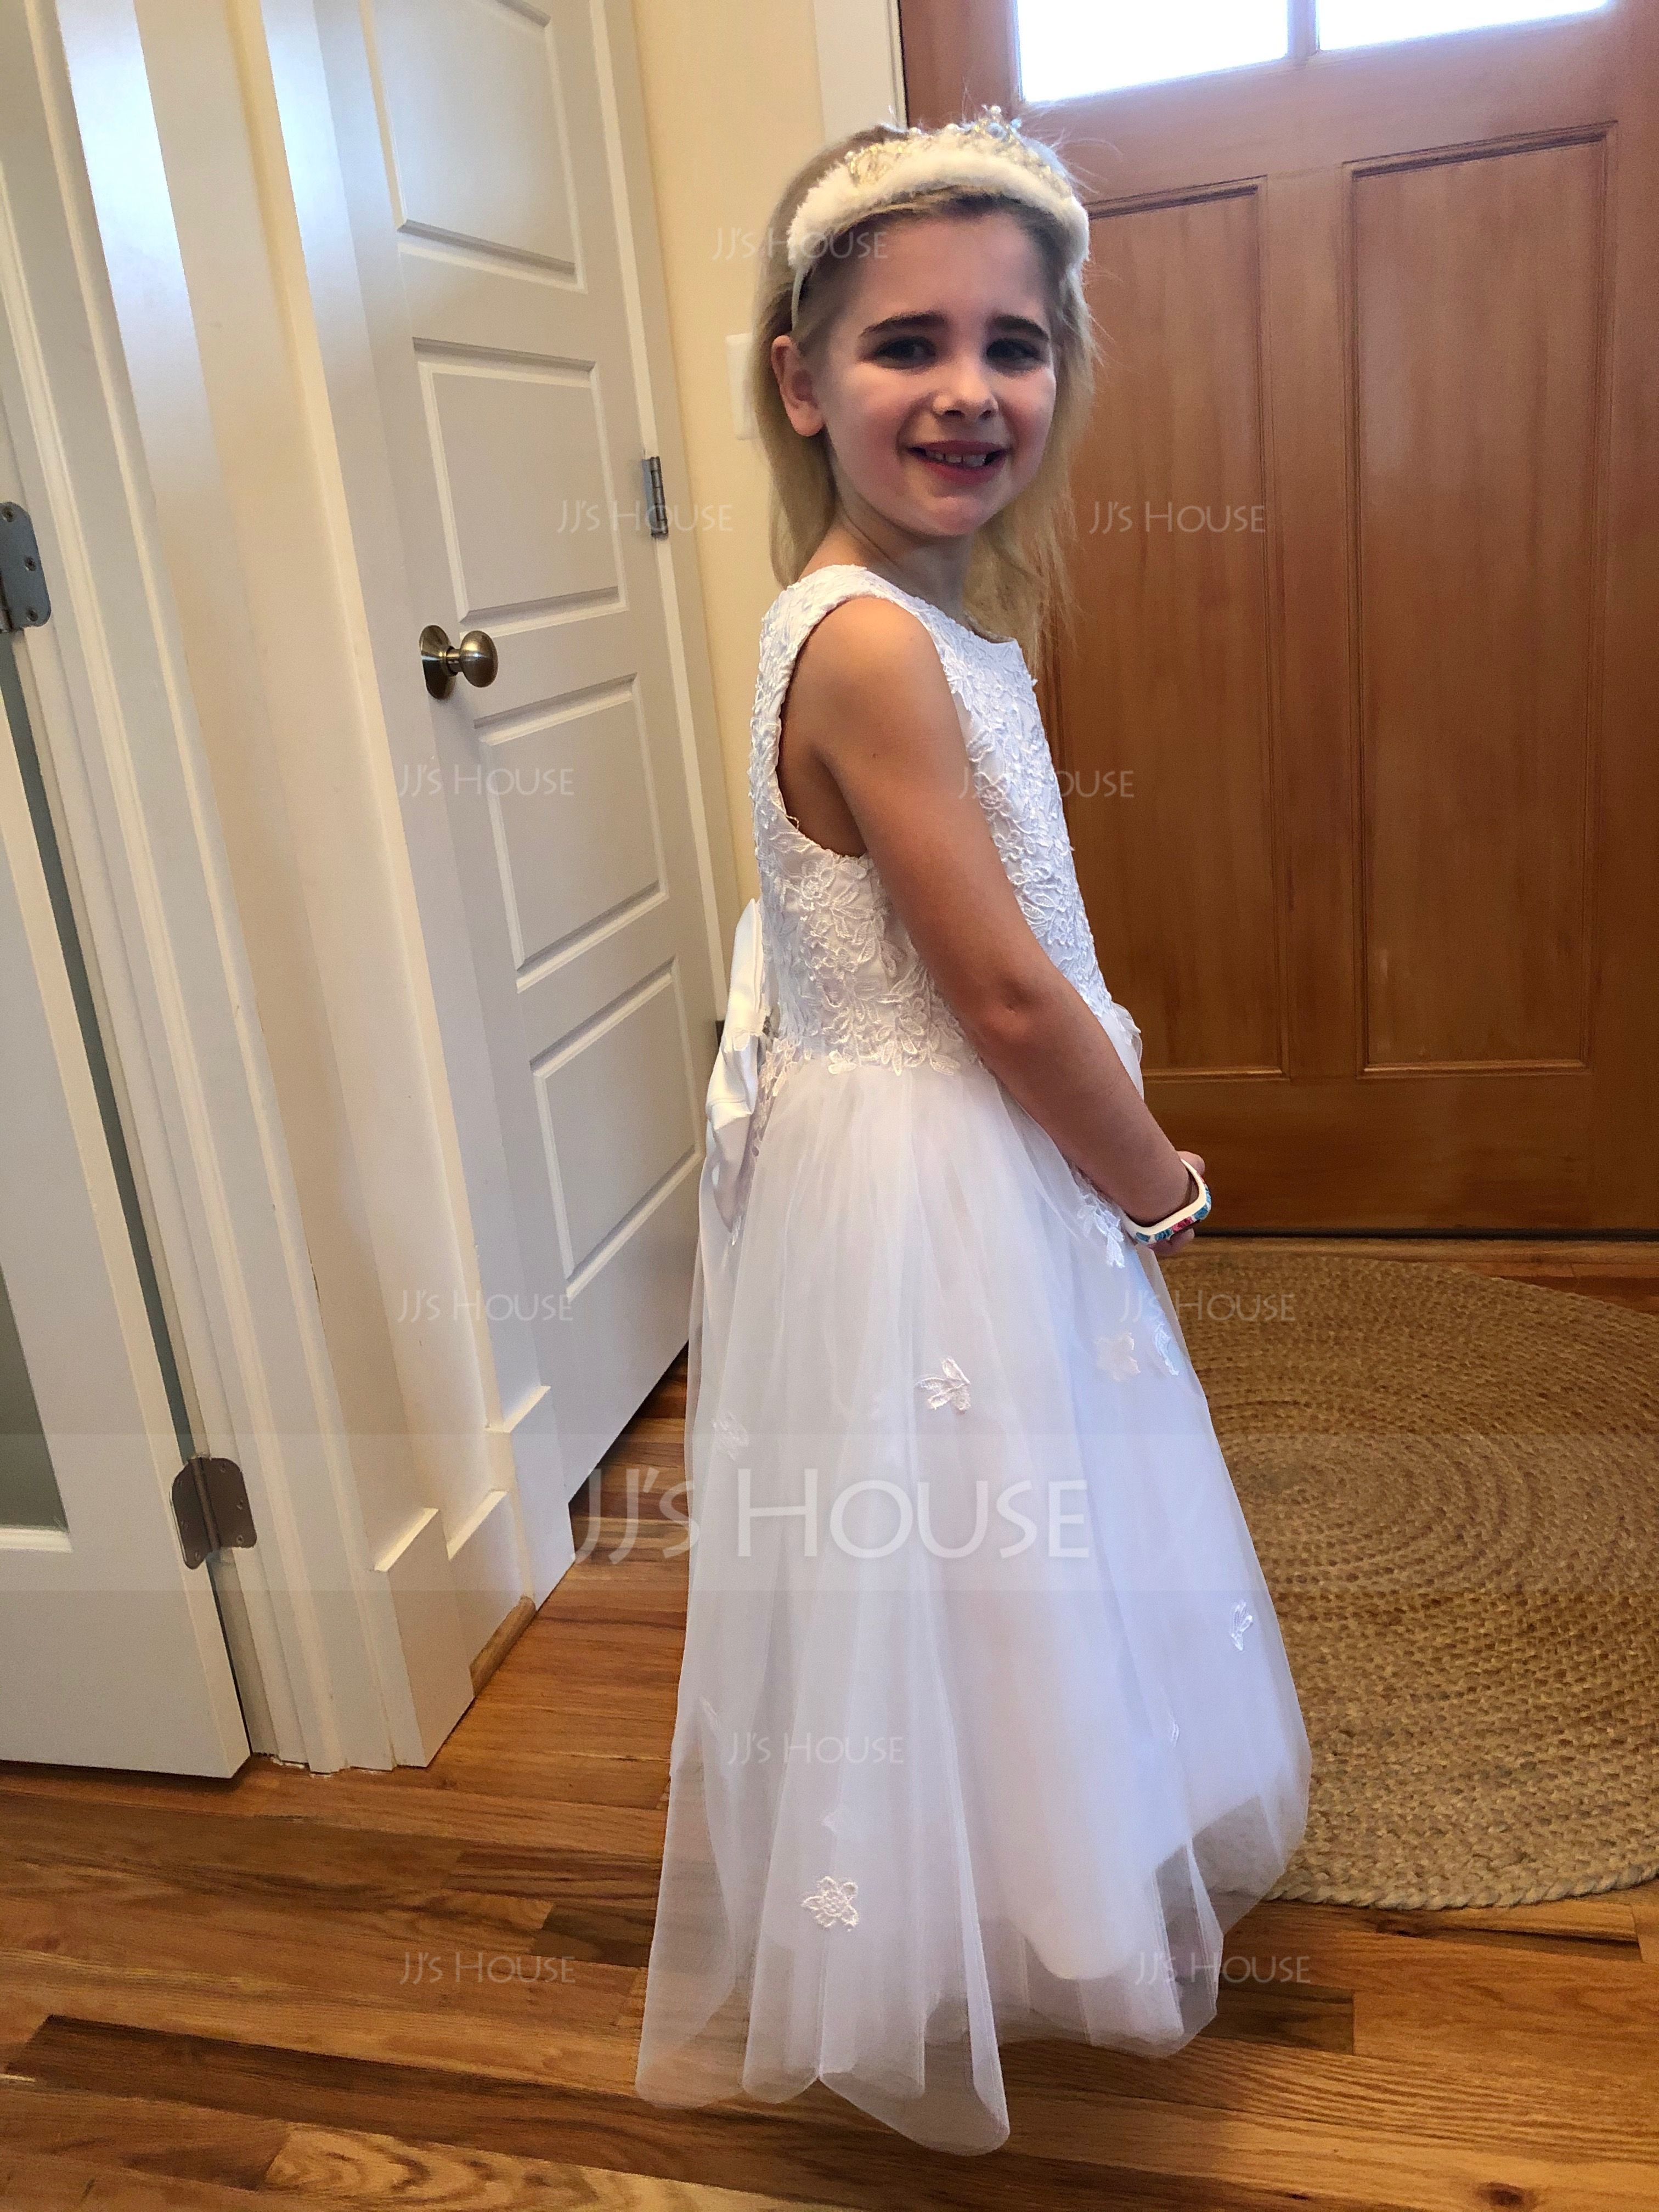 A-Line/Princess Tea-length Flower Girl Dress - Satin/Tulle Sleeveless Scoop Neck With Bow(s) (010094047)